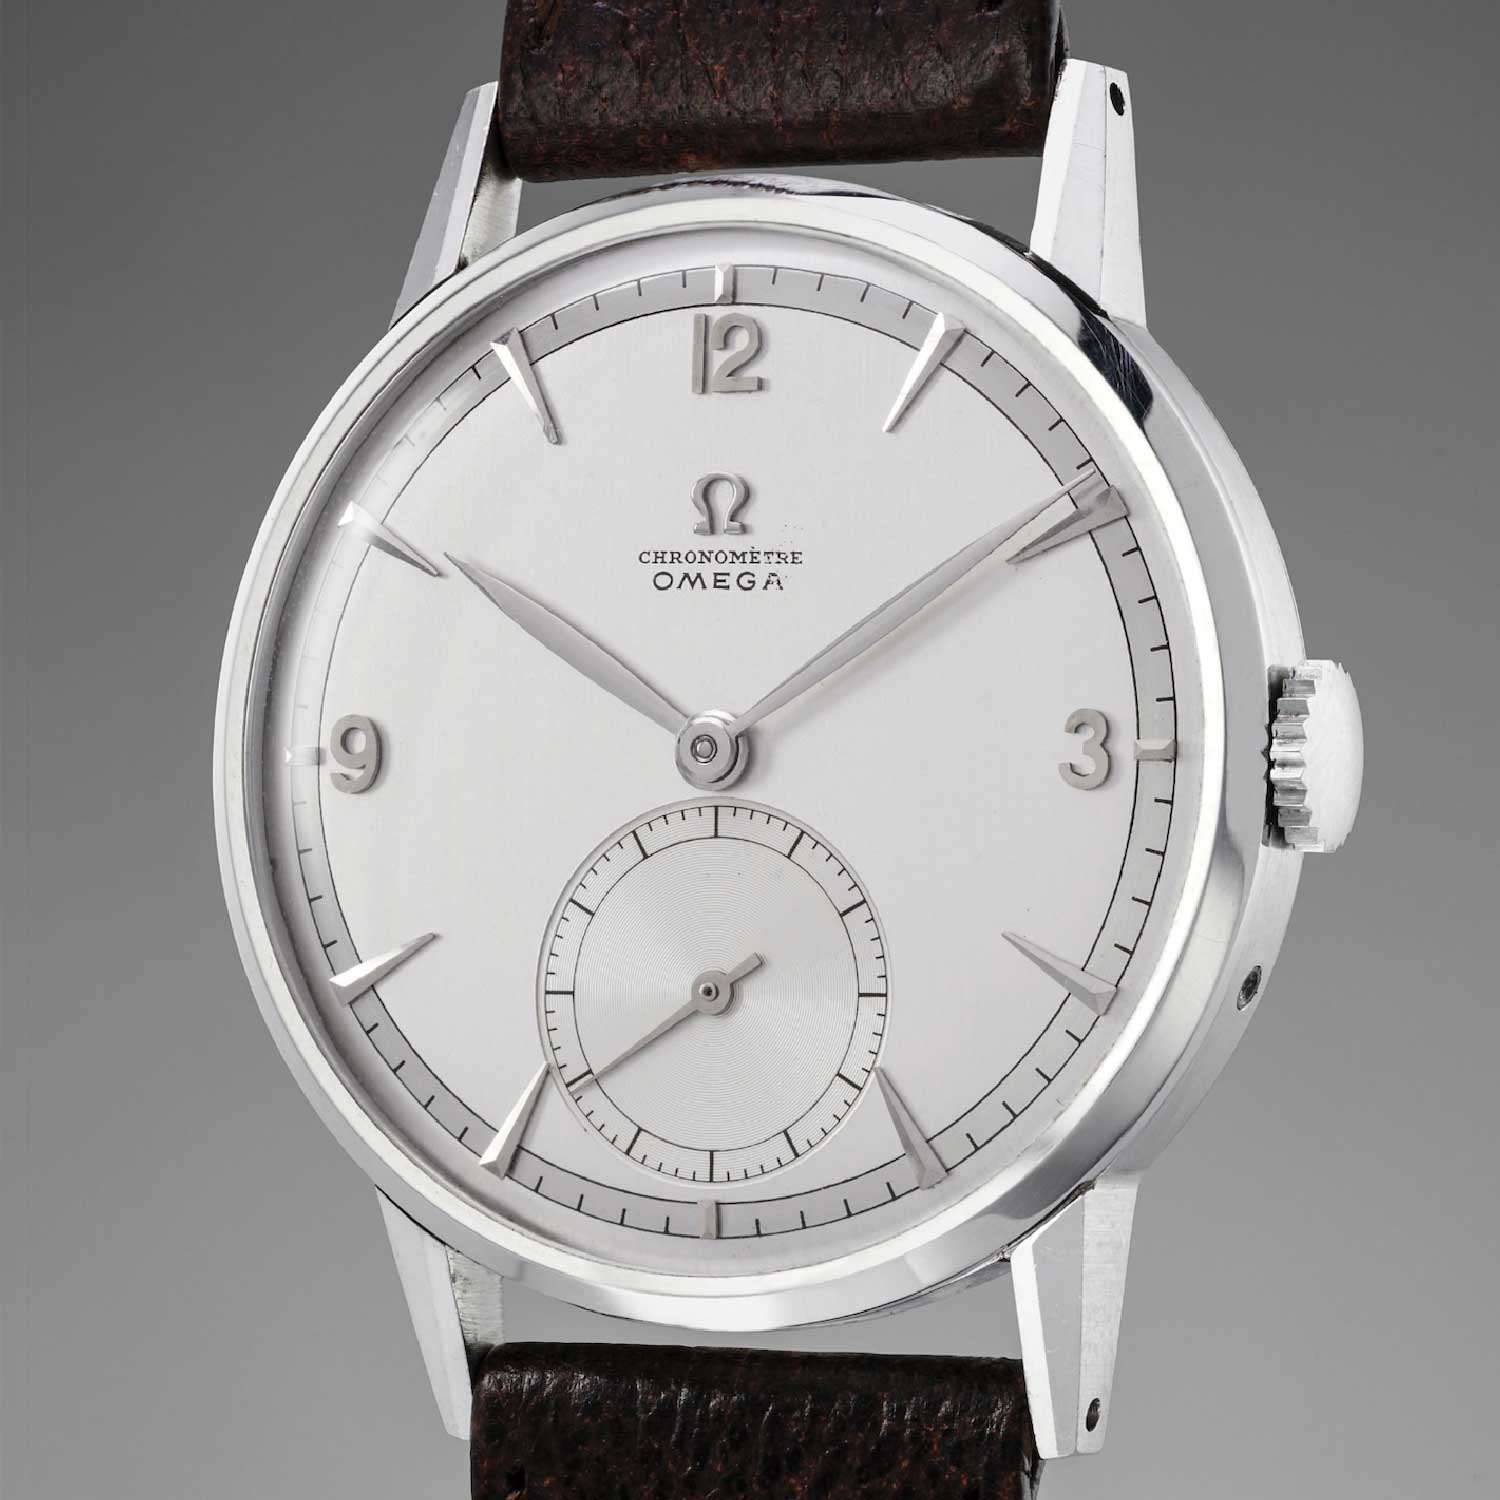 The prototype tourbillon wristwatch Omega produced in 1947 that was sold at Phillips Auction for CHF1,428,500 in 2017 (Image: Phillips.com)